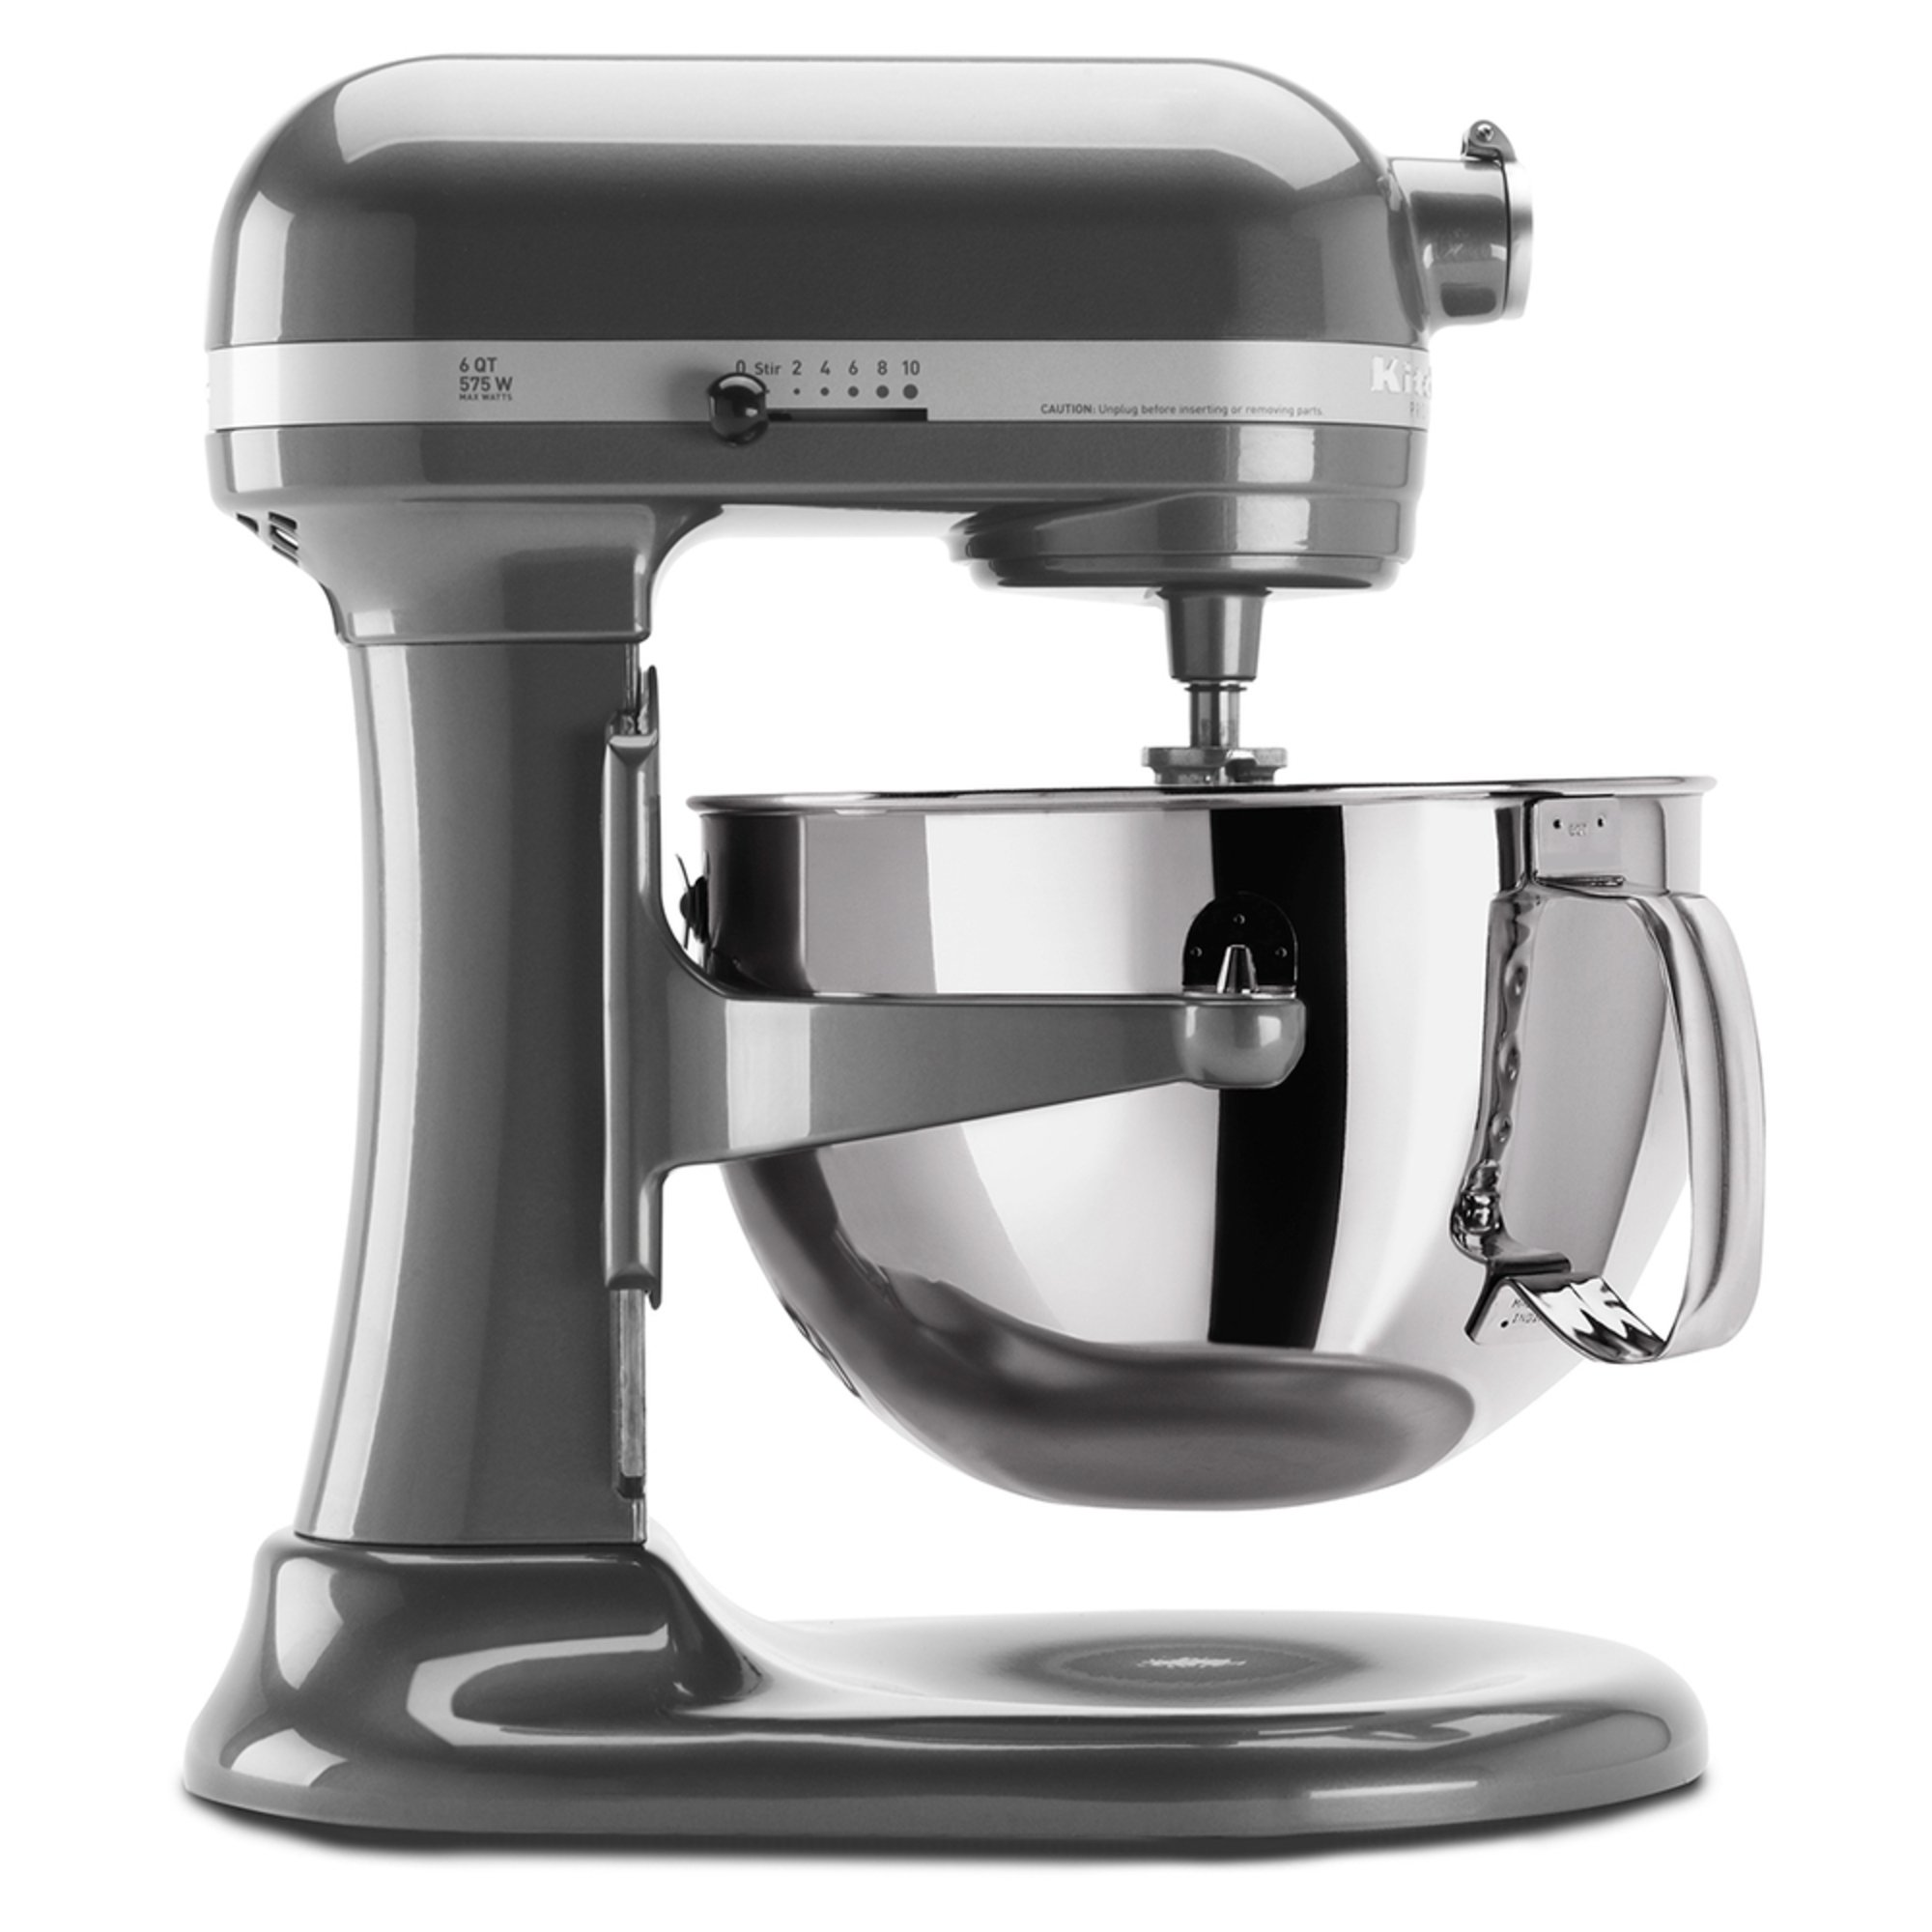 Kitchenaid Professional 600 Series 6-quart Bowl-lift Stand